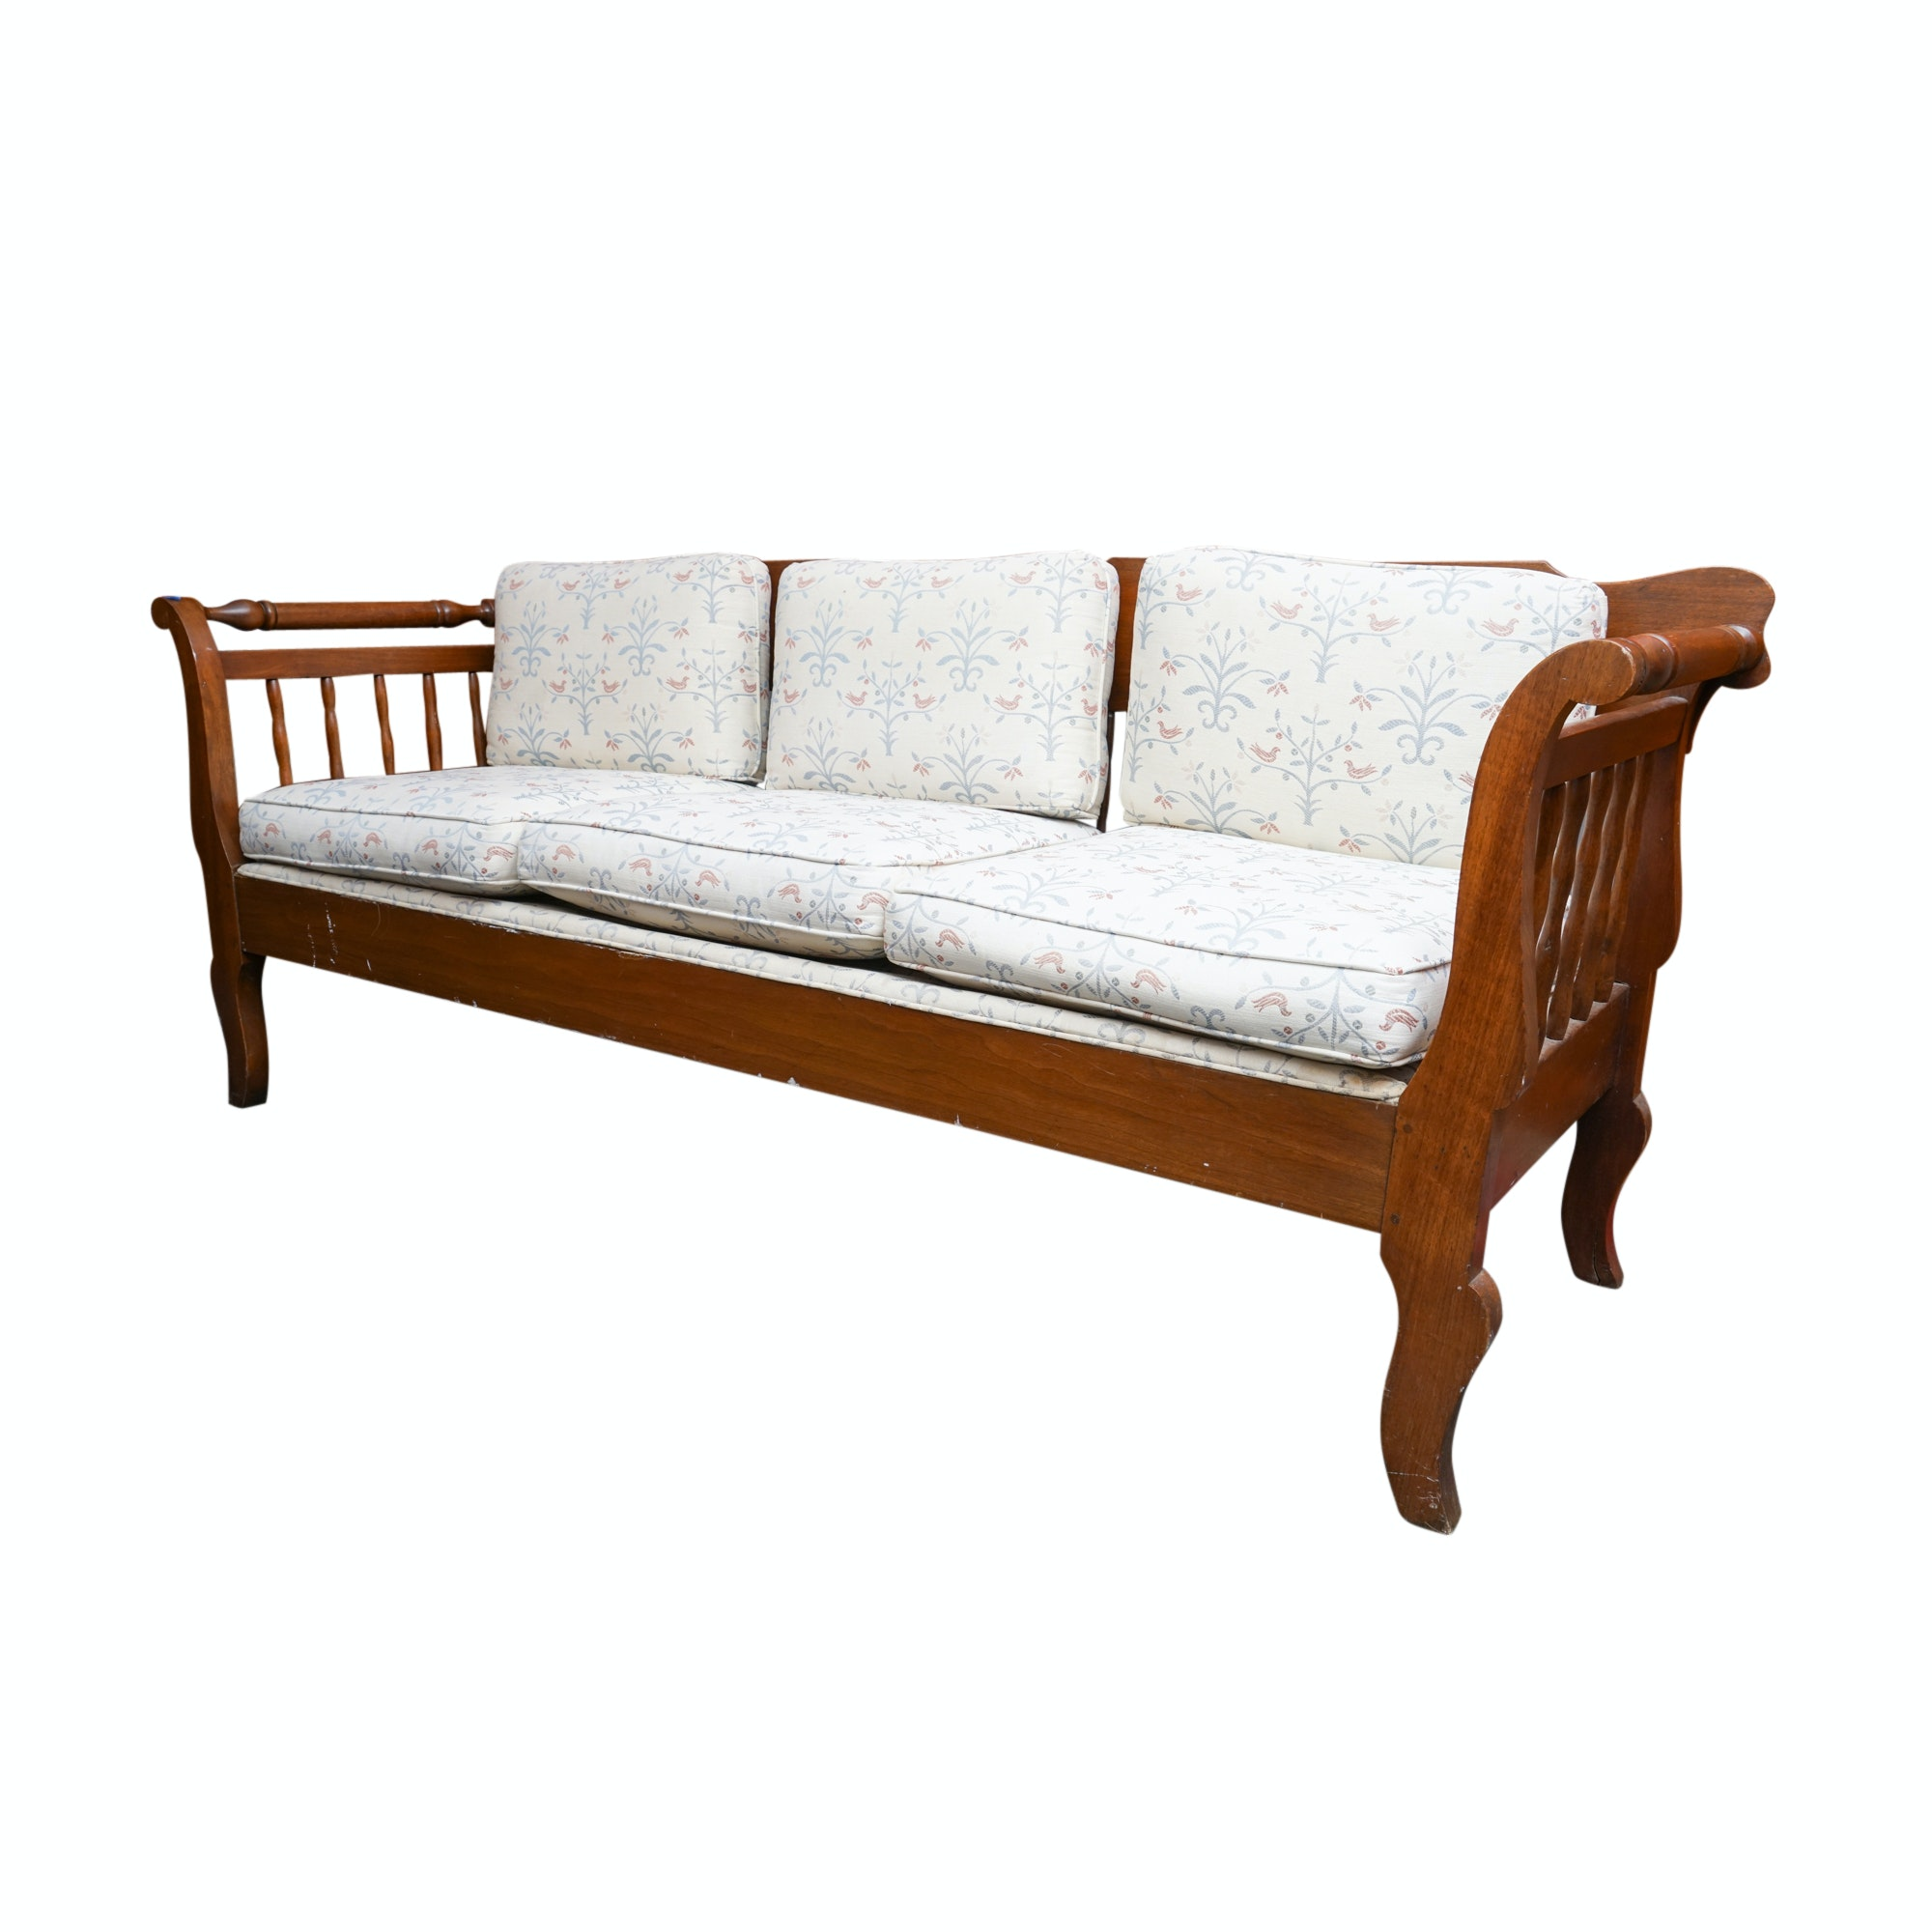 Vintage Wood Daybed with Cushions